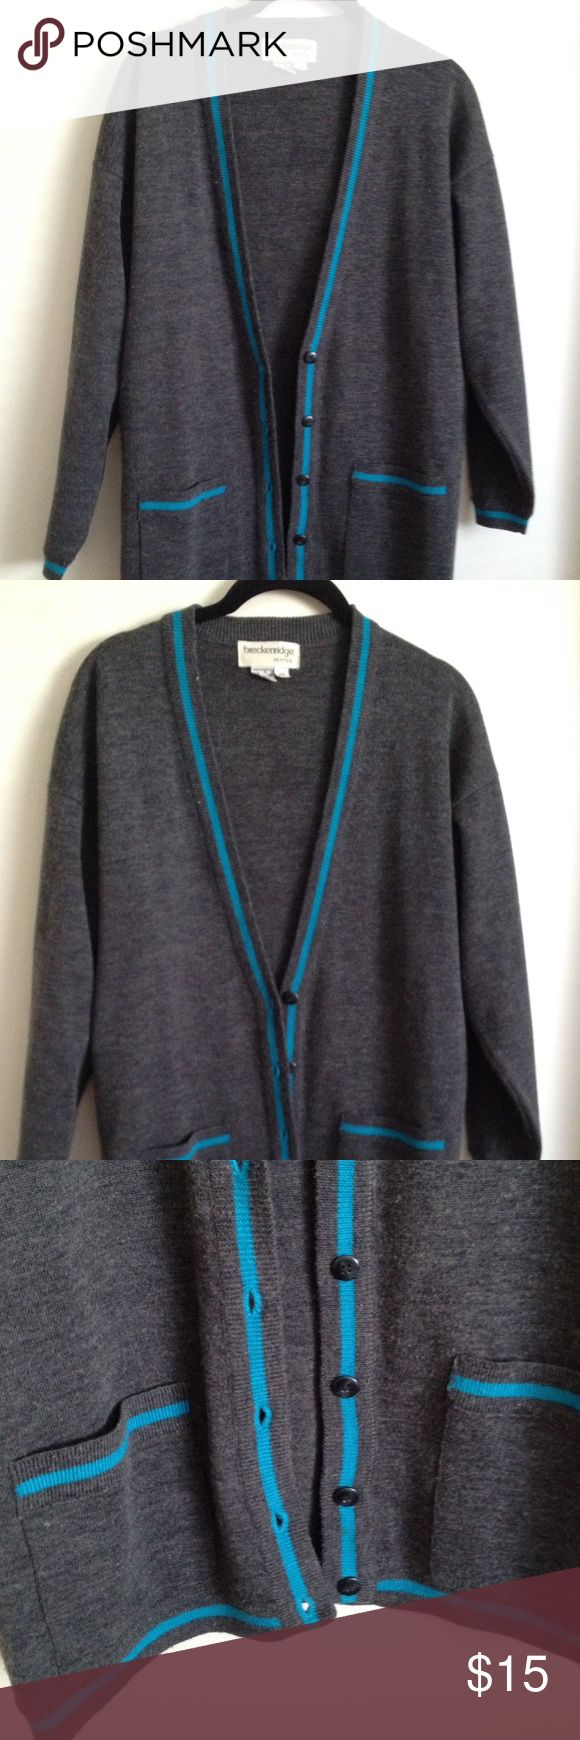 Breckinridge Petite Cardigan Charcoal gray with teal accents, this cardigan is perfect for any outfit. Looks great with jeans, leggings, skirts, etc. In great condition, barely worn. Breckenridge Petite Sweaters Cardigans